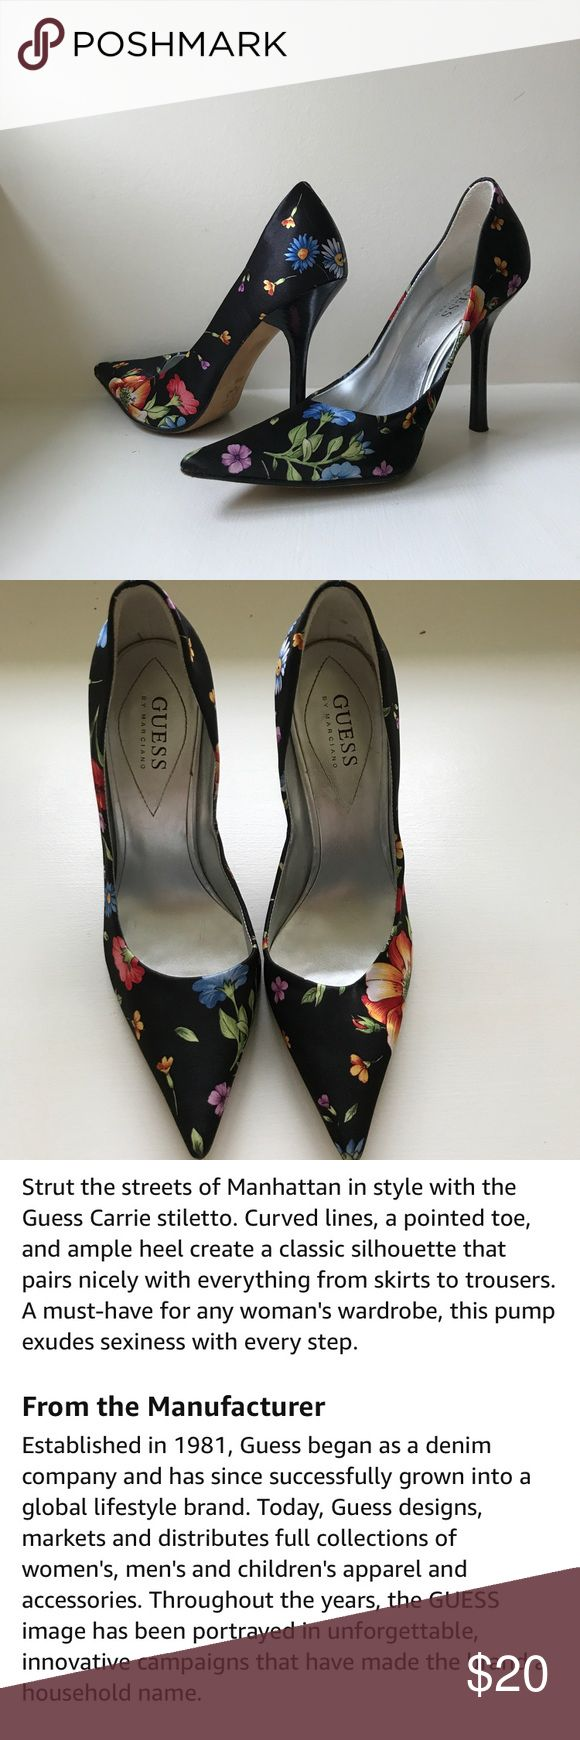 Guess by Marciano Floral Carrie Pump Heels 💎Guess by Marciano Floral Carrie Pump Heels. Classic Guess heels named after the founder of Guess, Paul Marciano. Leather Sole!  💎Have been worn 1-2x however the only signs of wear can be seen on the bottom and inside of the shoes! Small marks are seen on the inside, scuffs on the bottom, won't notice any of the tiny flaws! 💎Classy Black Floral print would look fantastic with slacks or jeans, or a dress or skirt! Take a peek at my other…